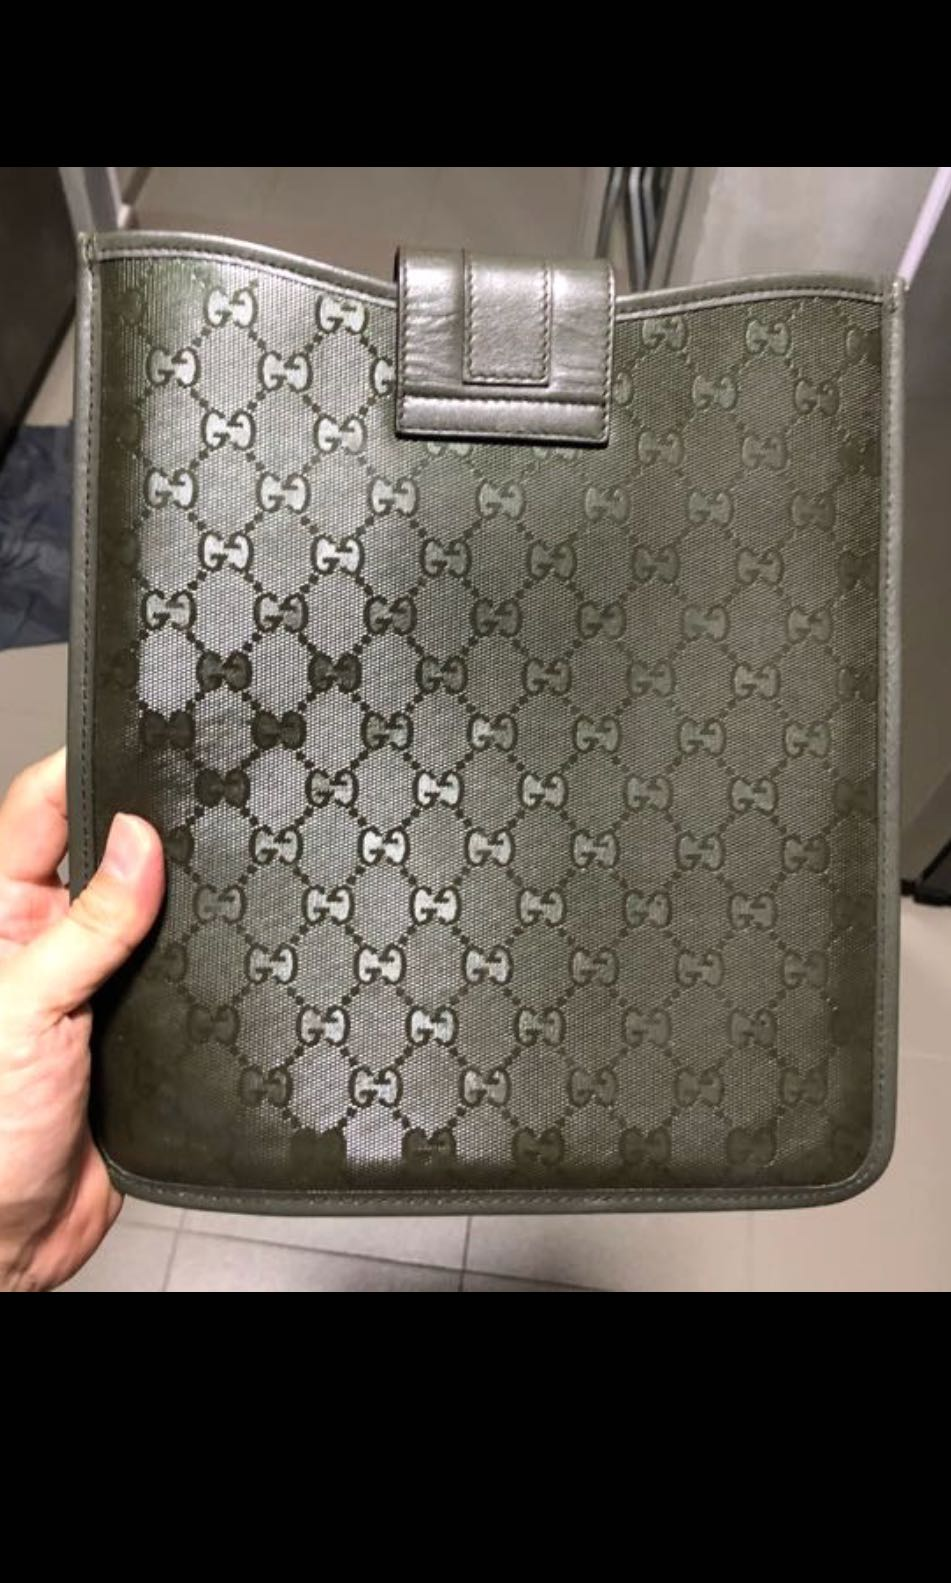 1b3ec2e46ca Gucci iPad 1 Sleeve Used With No Receipt   Apple Prada Lv Branded ...